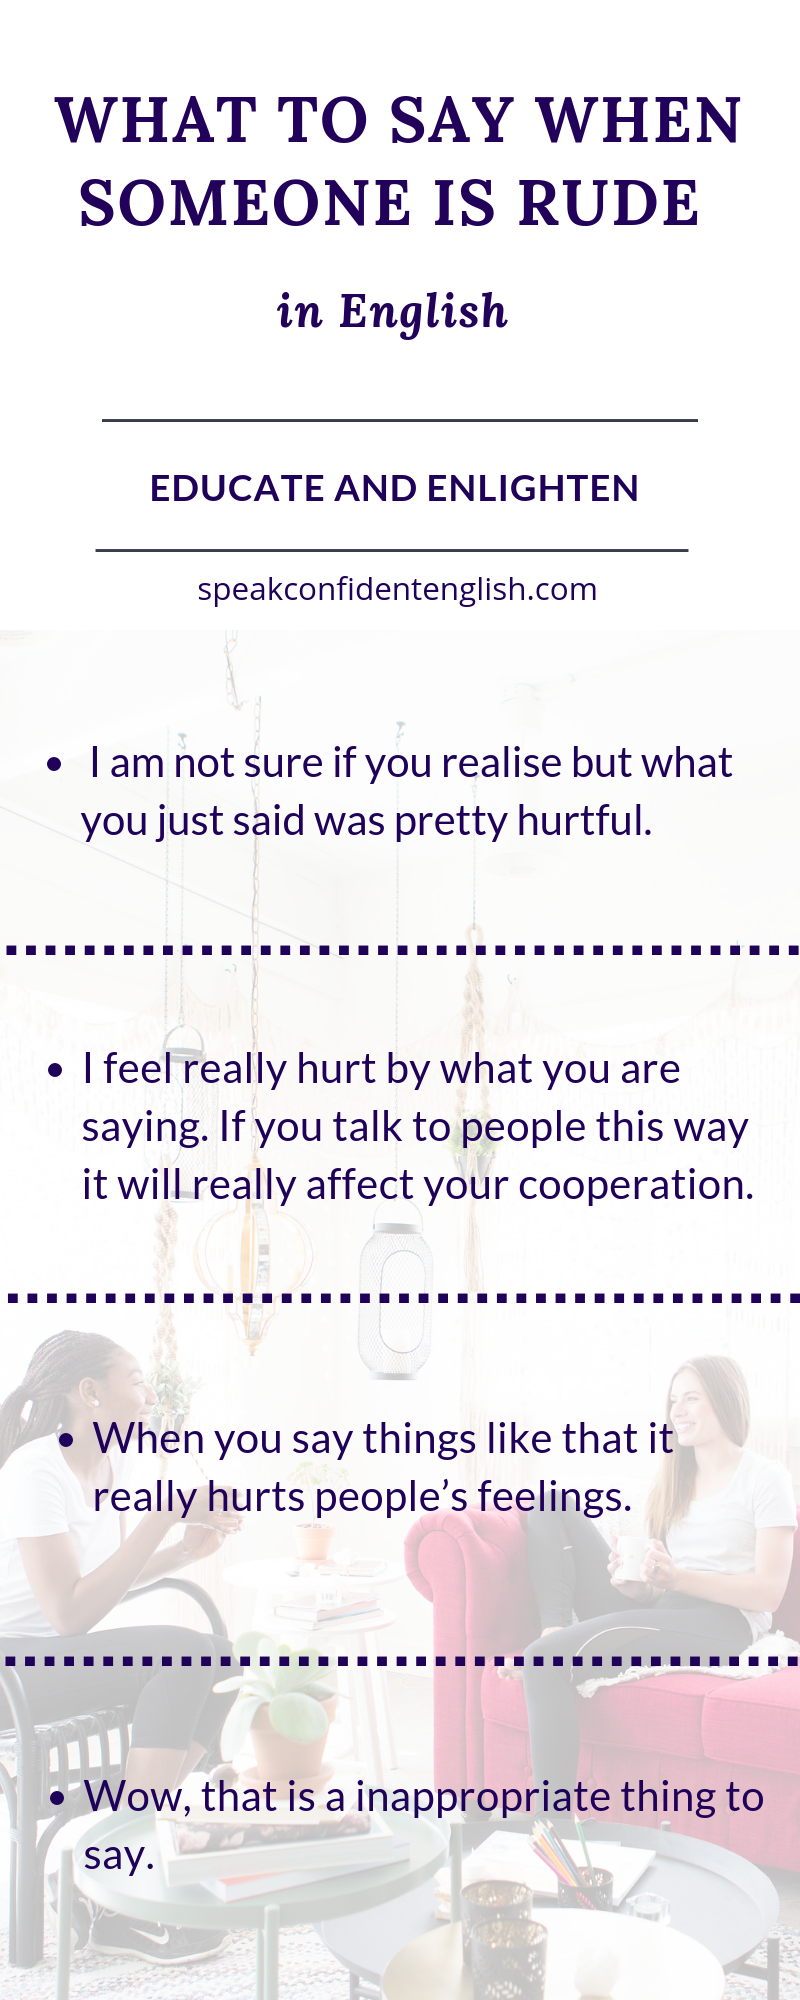 What to Say When Someone Is Rude in English with 4 Simple Strategies